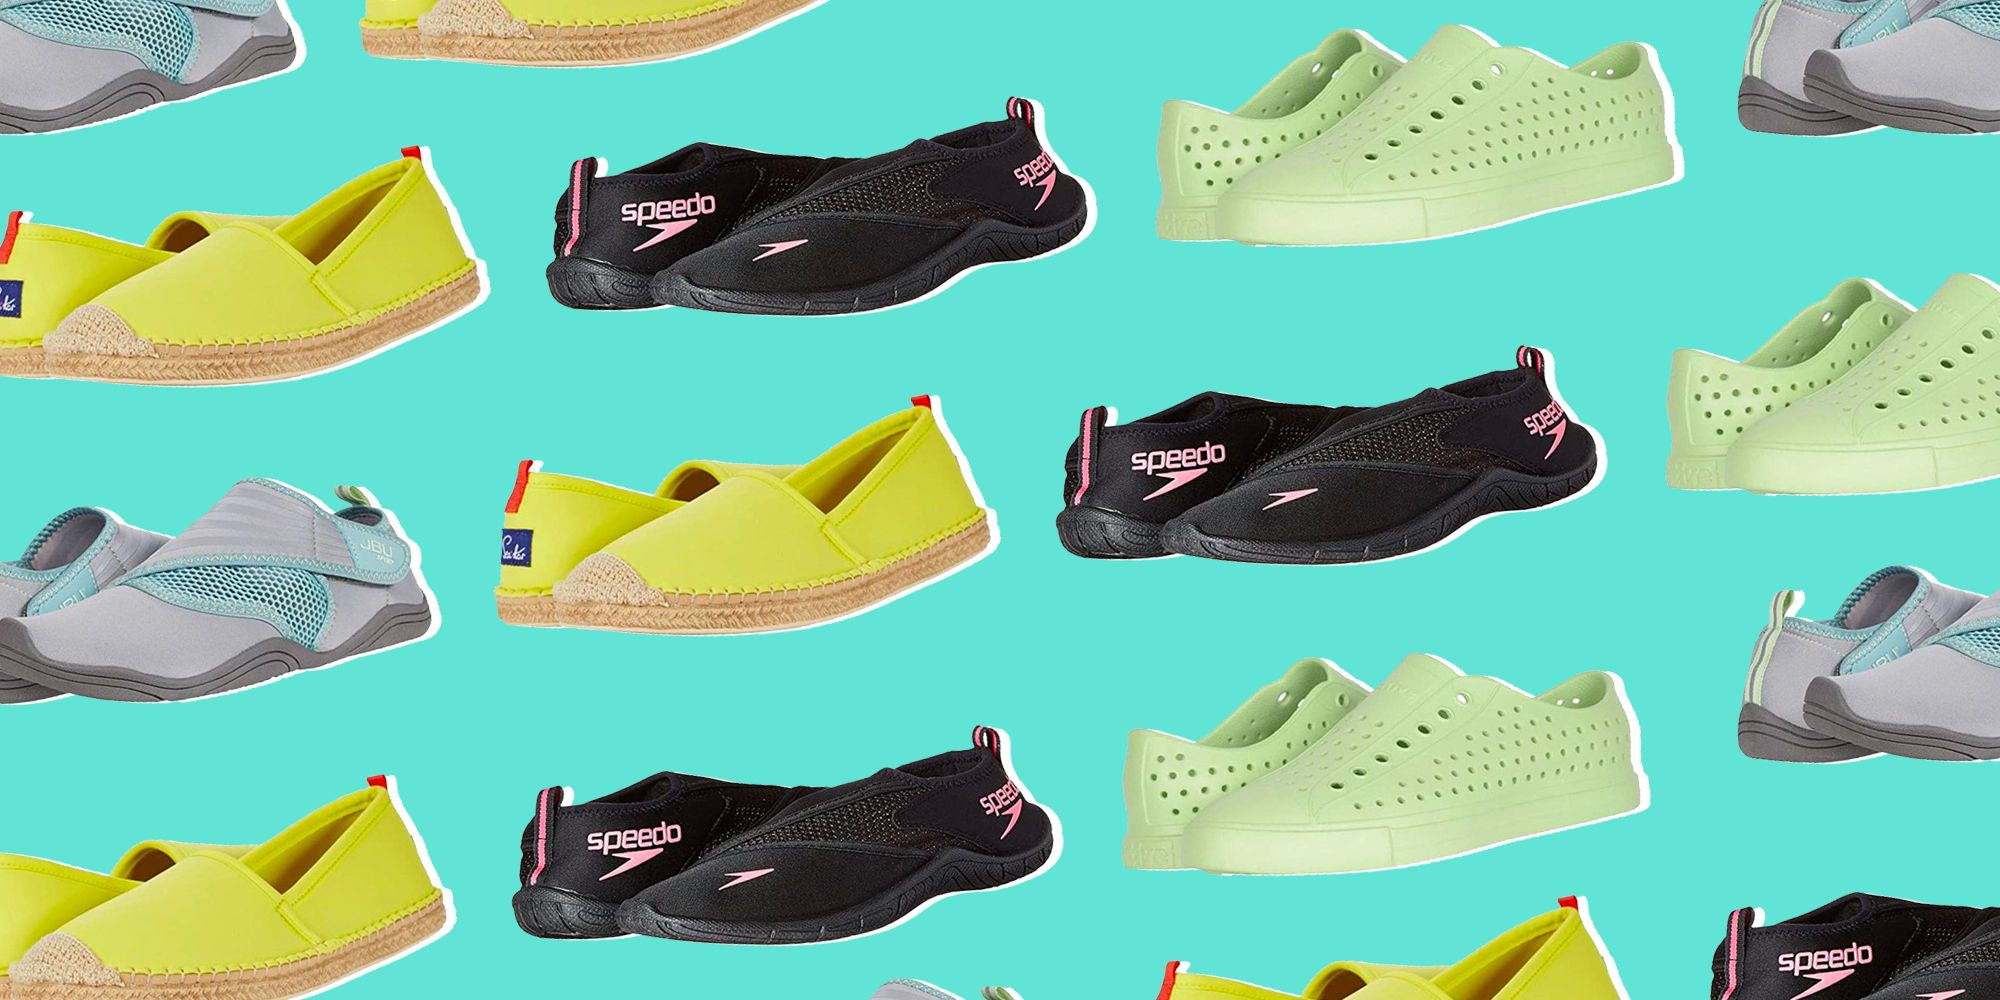 17 Best Water Shoes for Women 2020